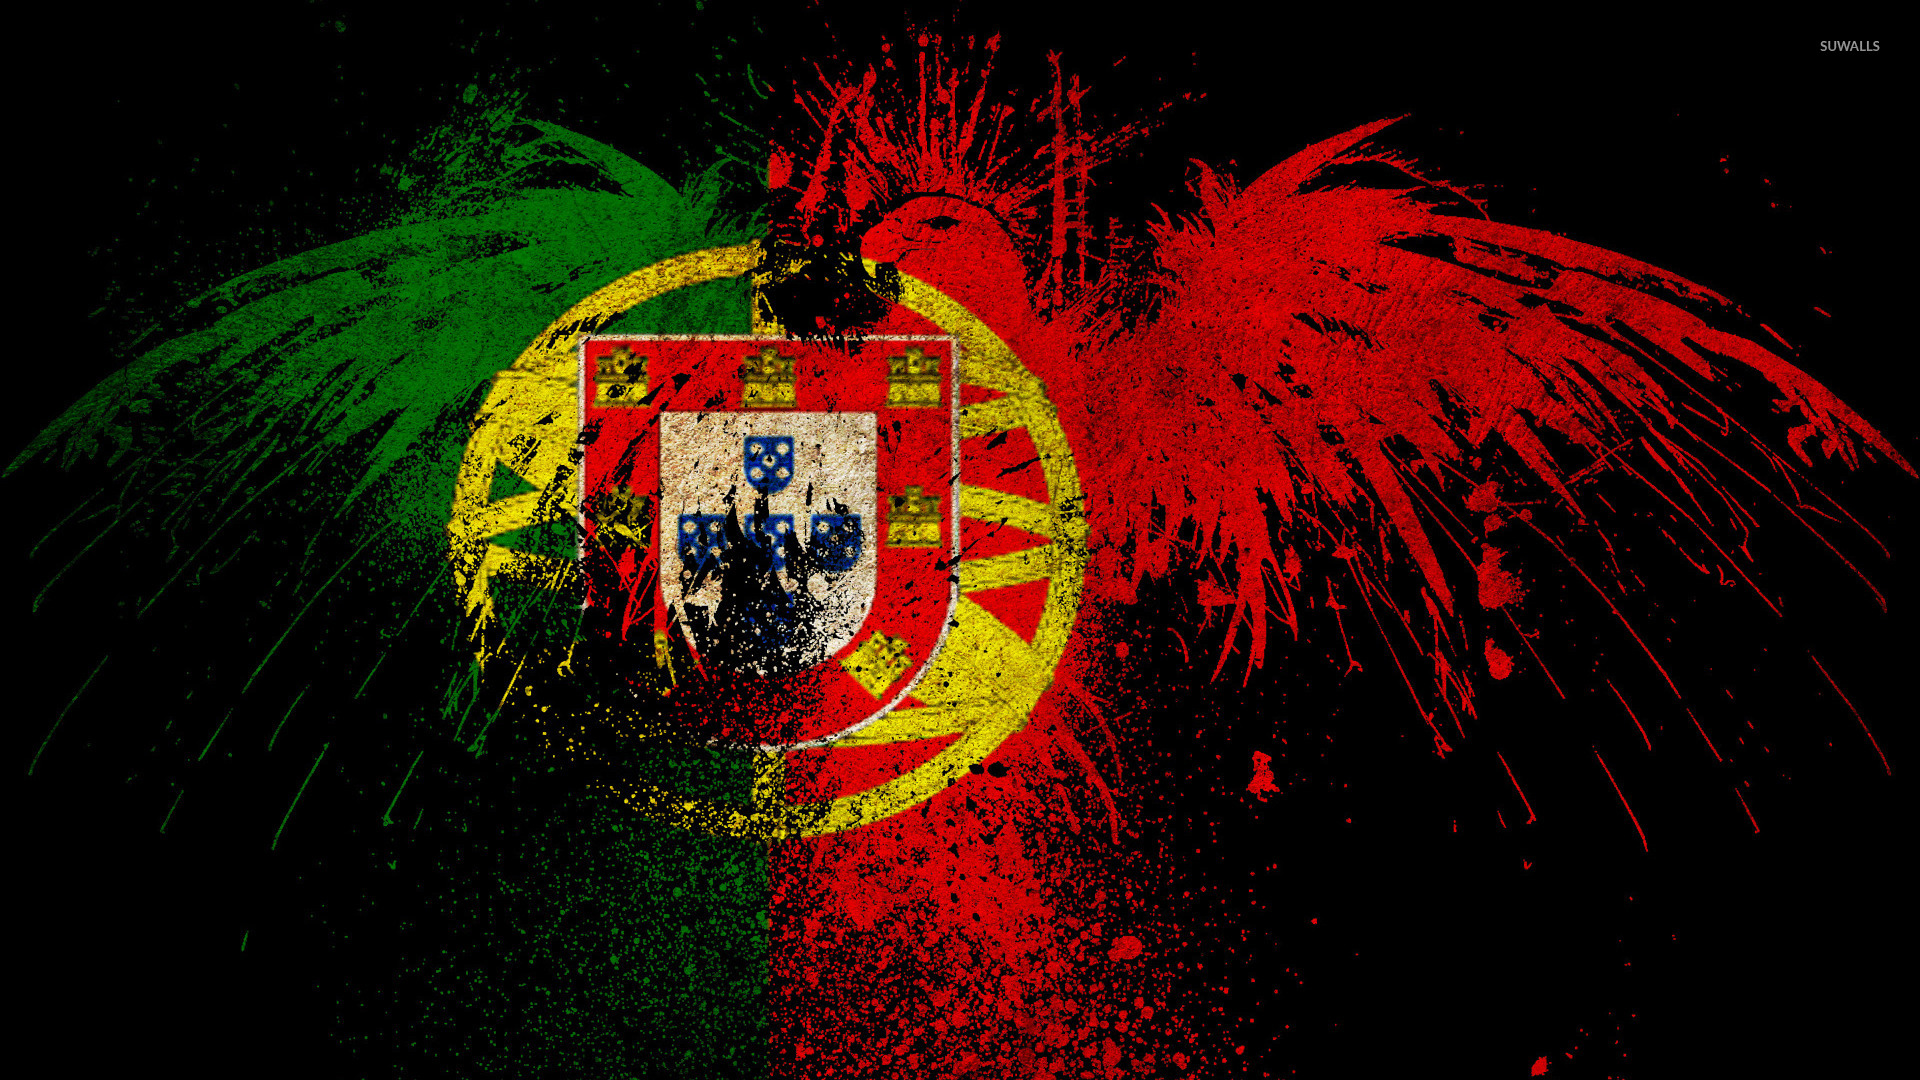 Country Quotes Phone Wallpaper Flag Of Portugal Wallpaper Digital Art Wallpapers 38864